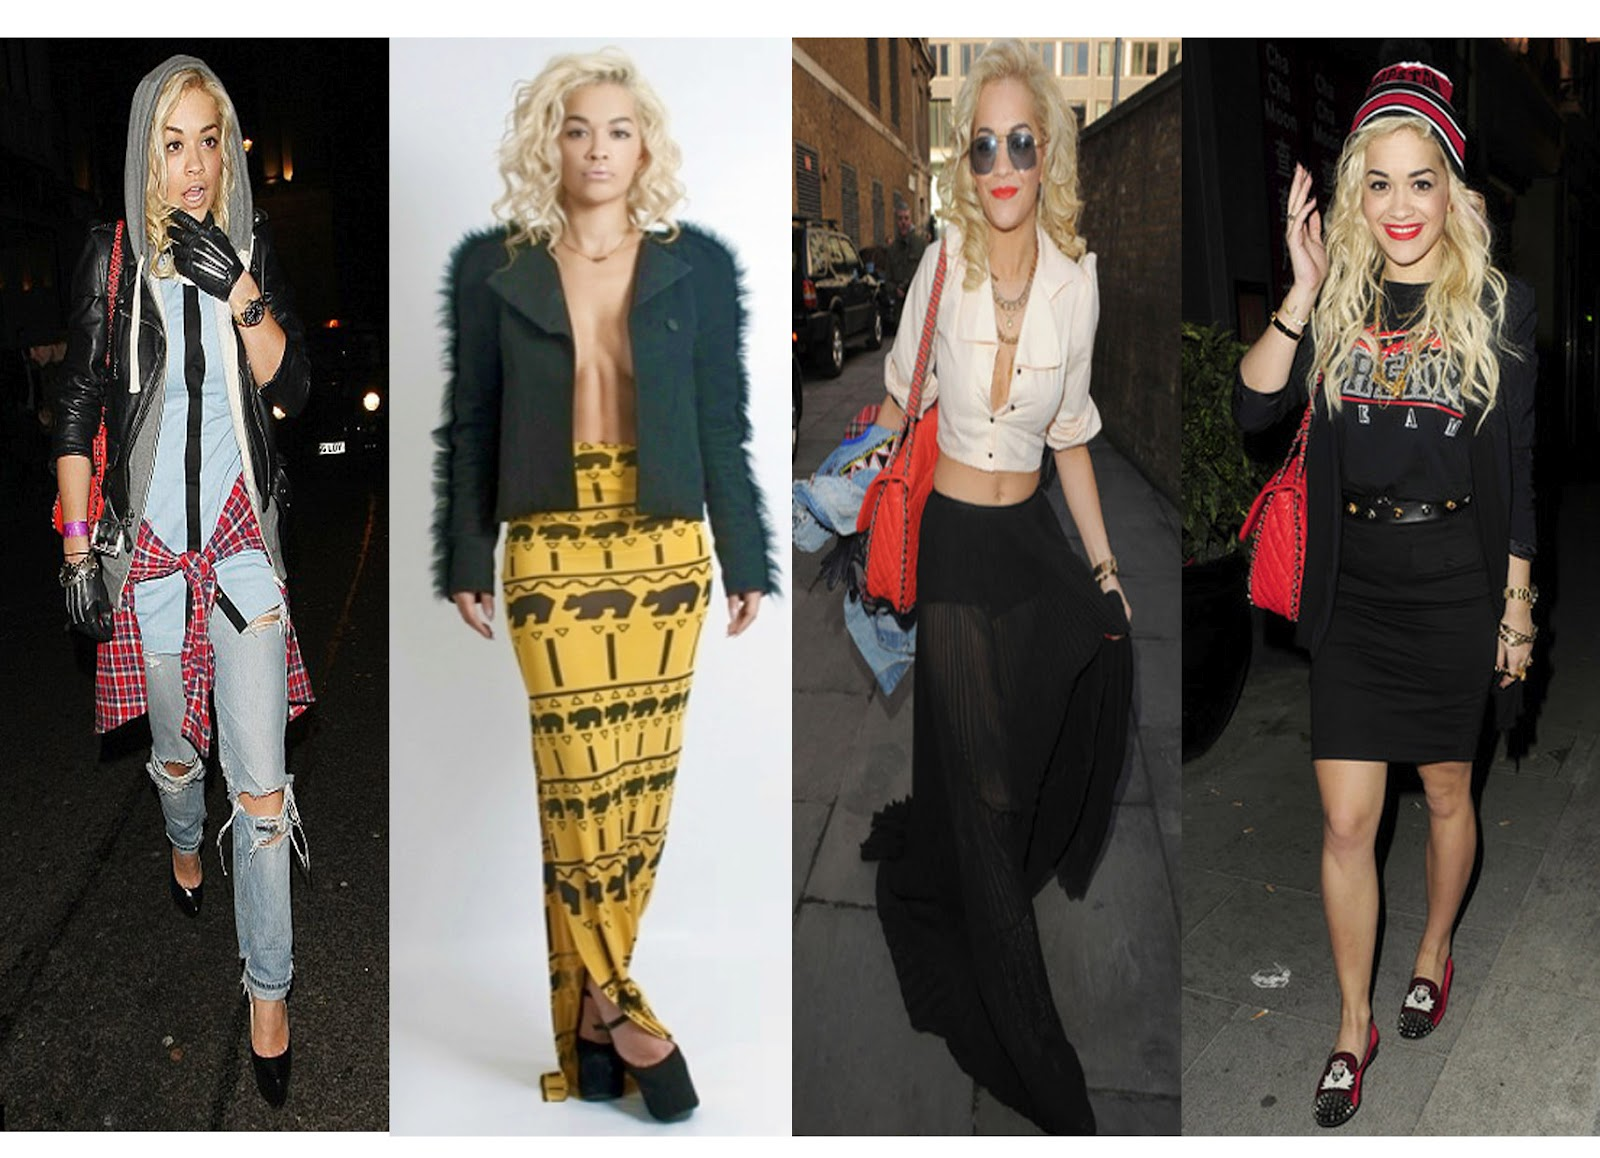 Rita Ora At The Moment Her Bold Blonde Curls And Unique Fashion Sense